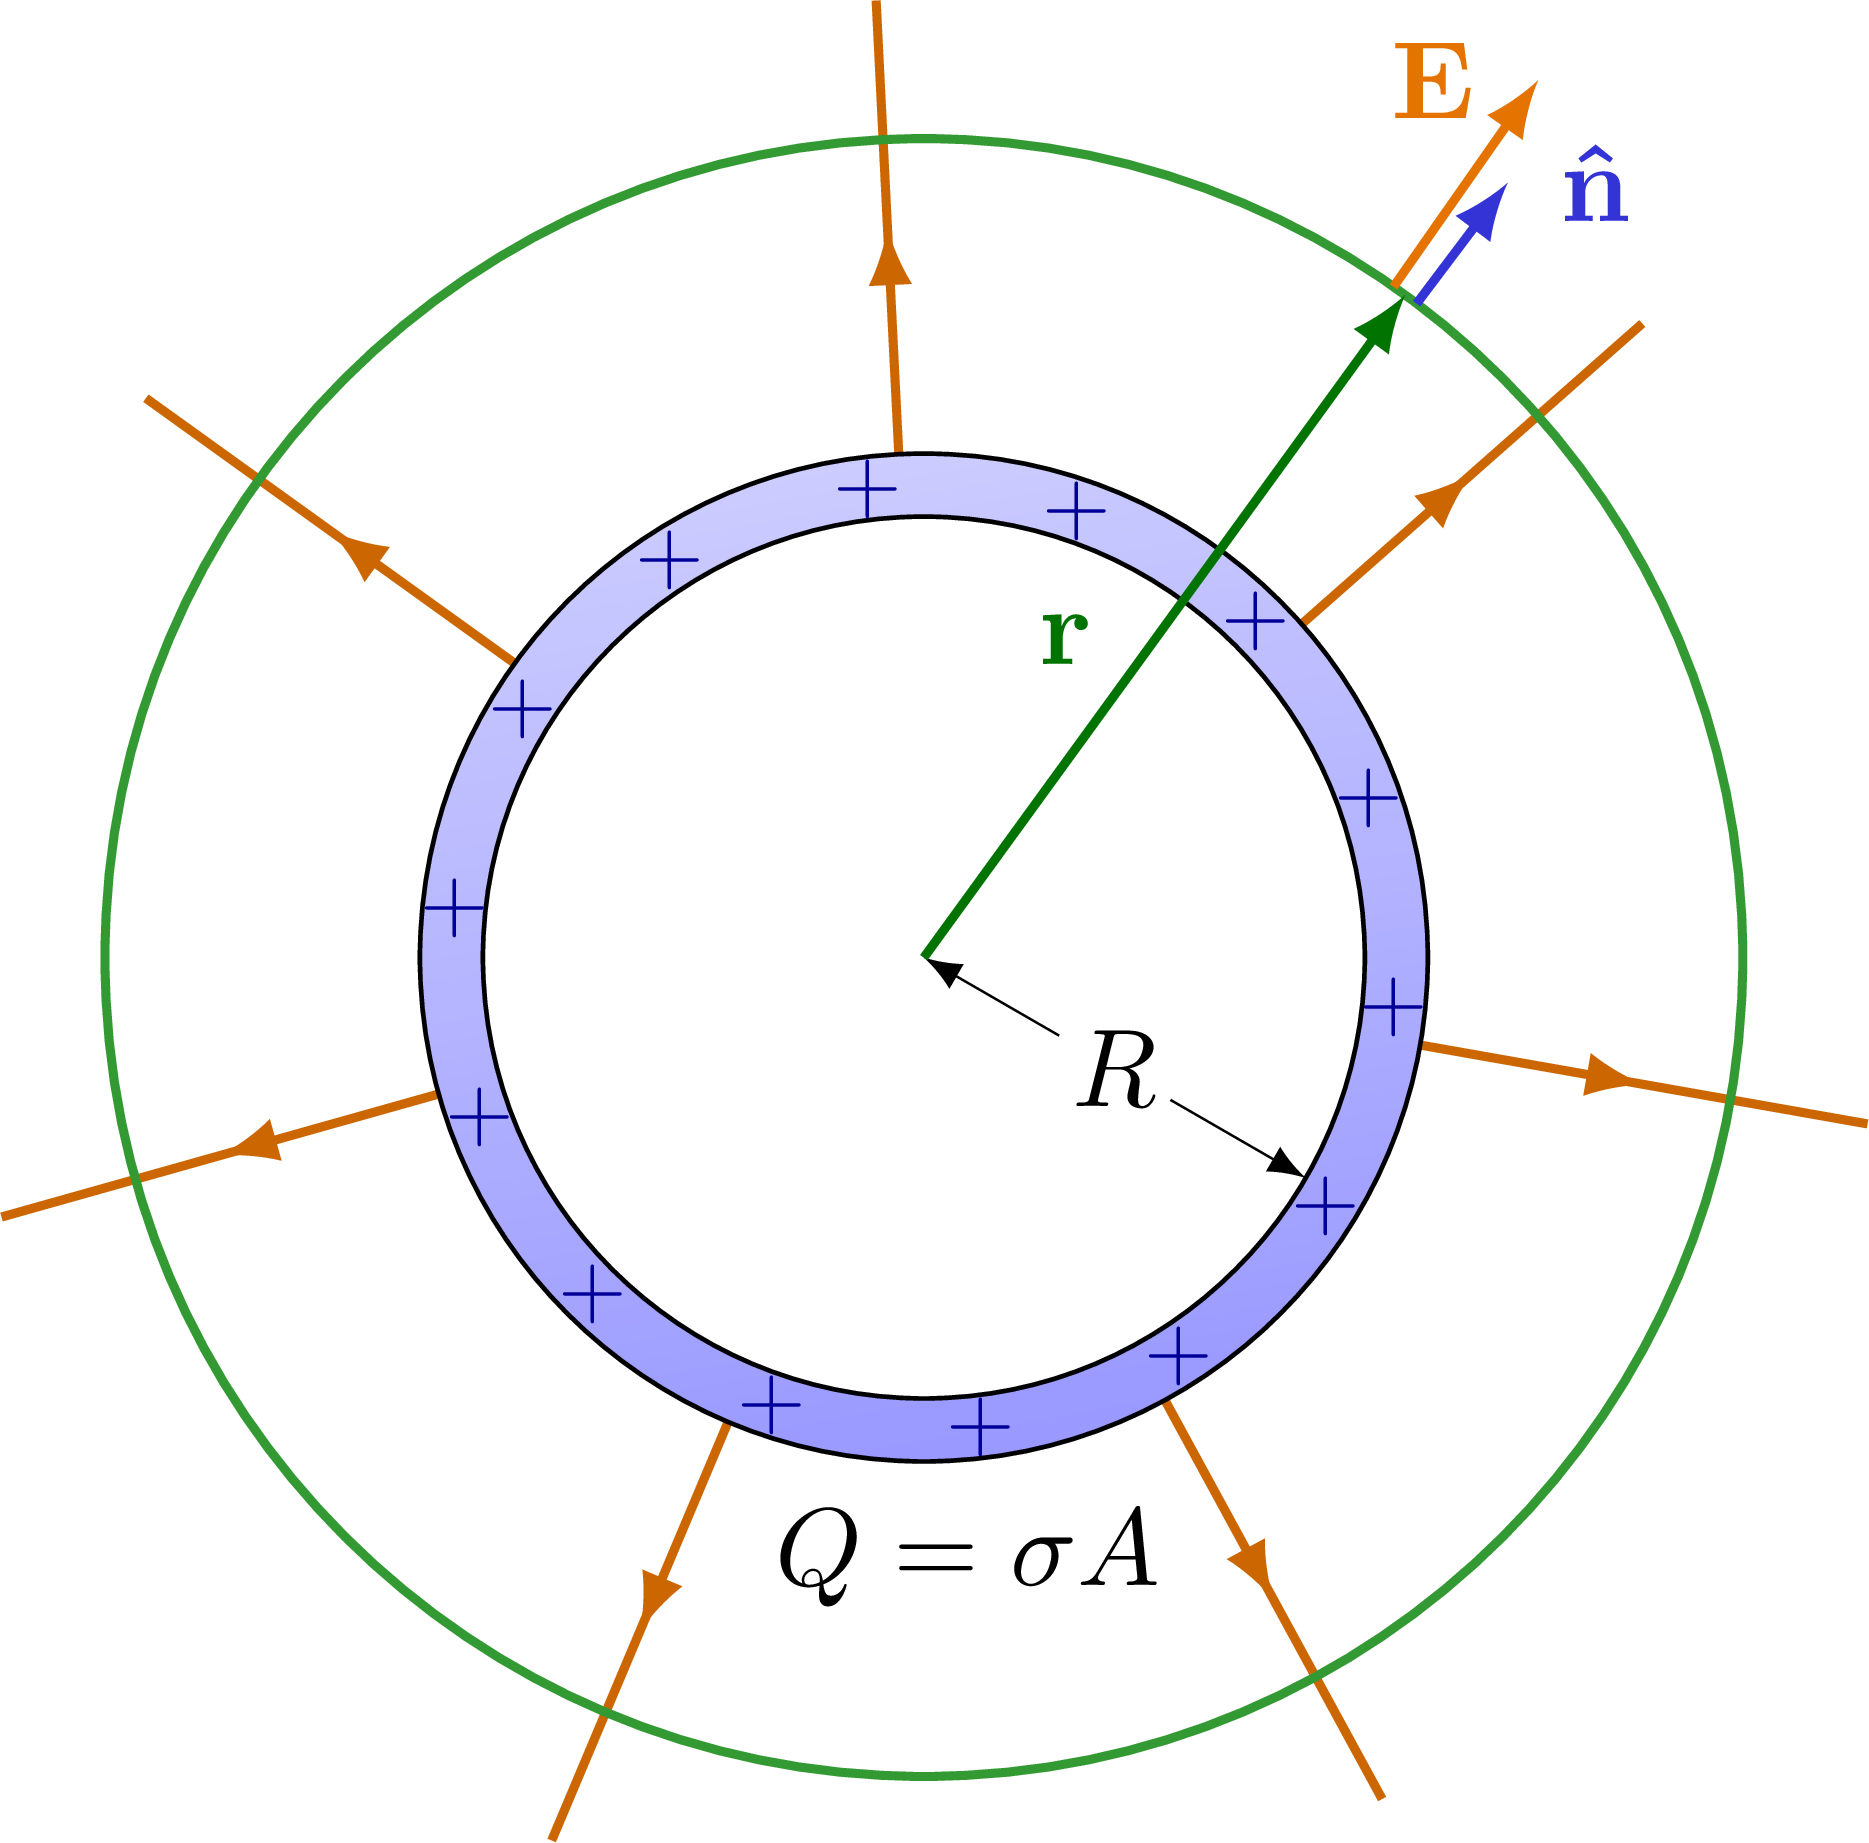 electric_field_sphere-005.png